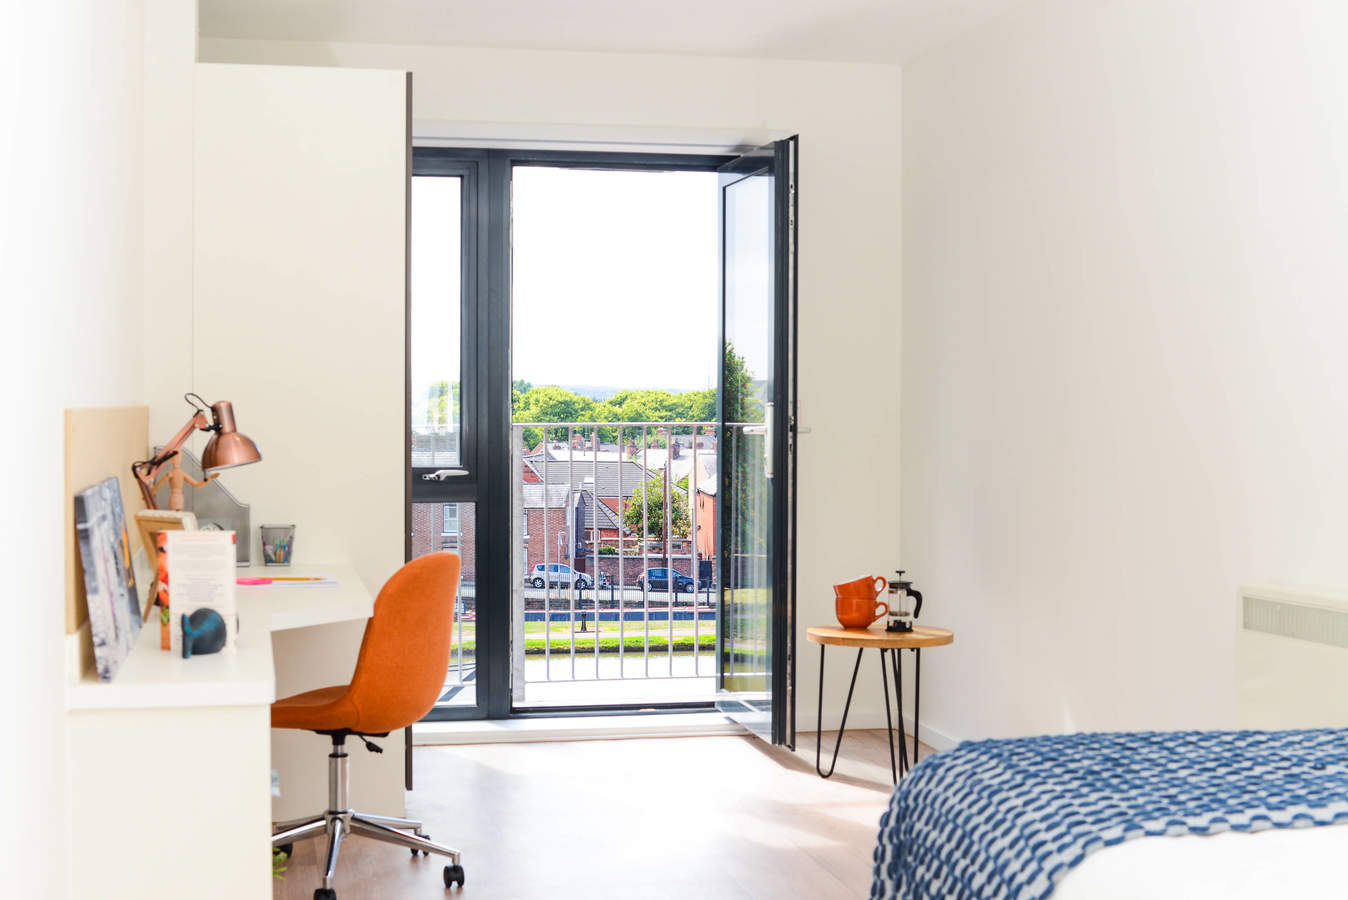 Chester_-_towpath_-_ensuite_balcony-5_converted